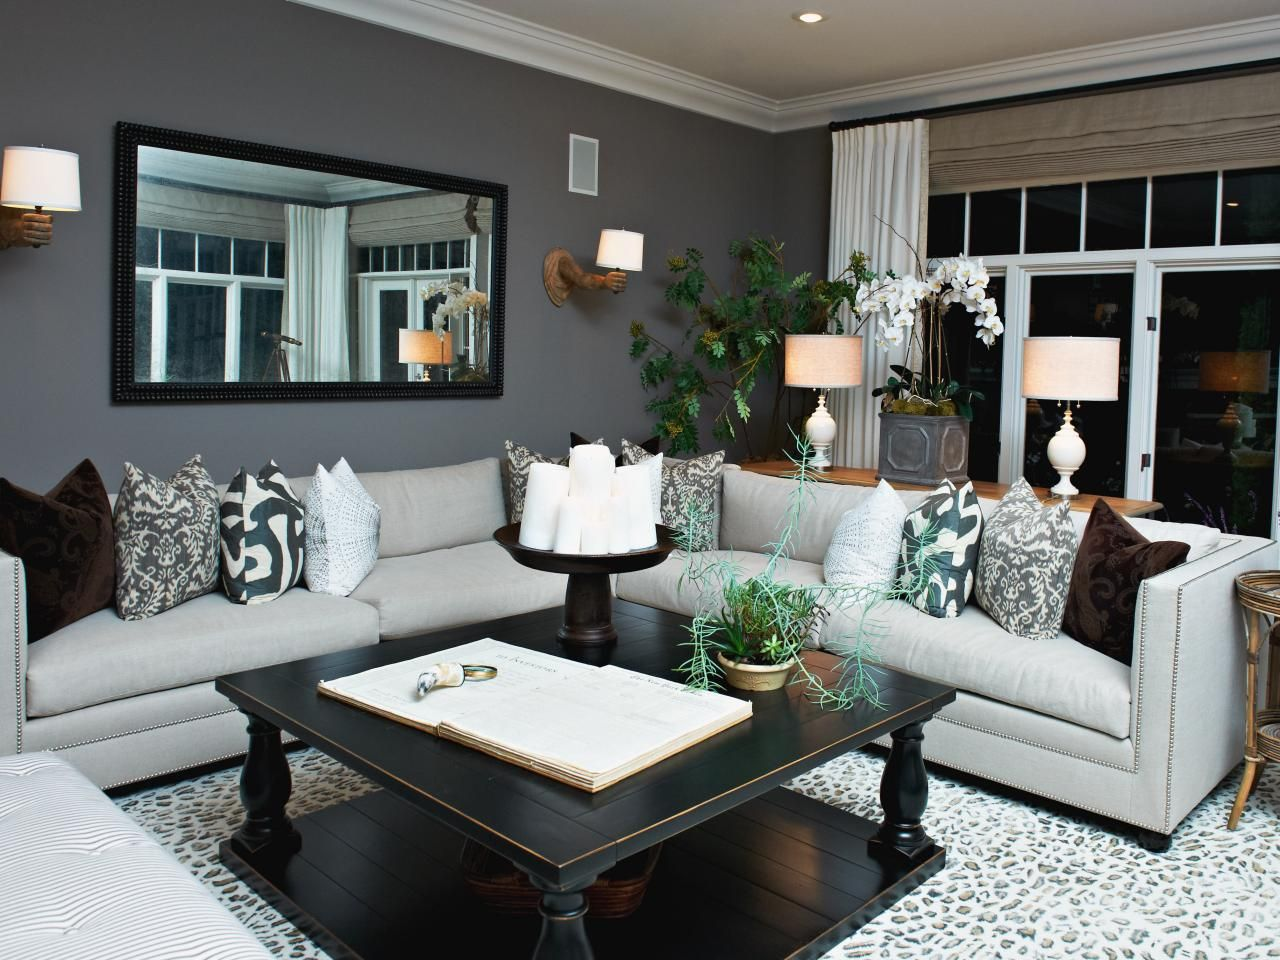 White Furniture Living Room Decorating Top 50 Pinterest Gallery 2014 Custom Rugs Style And Design